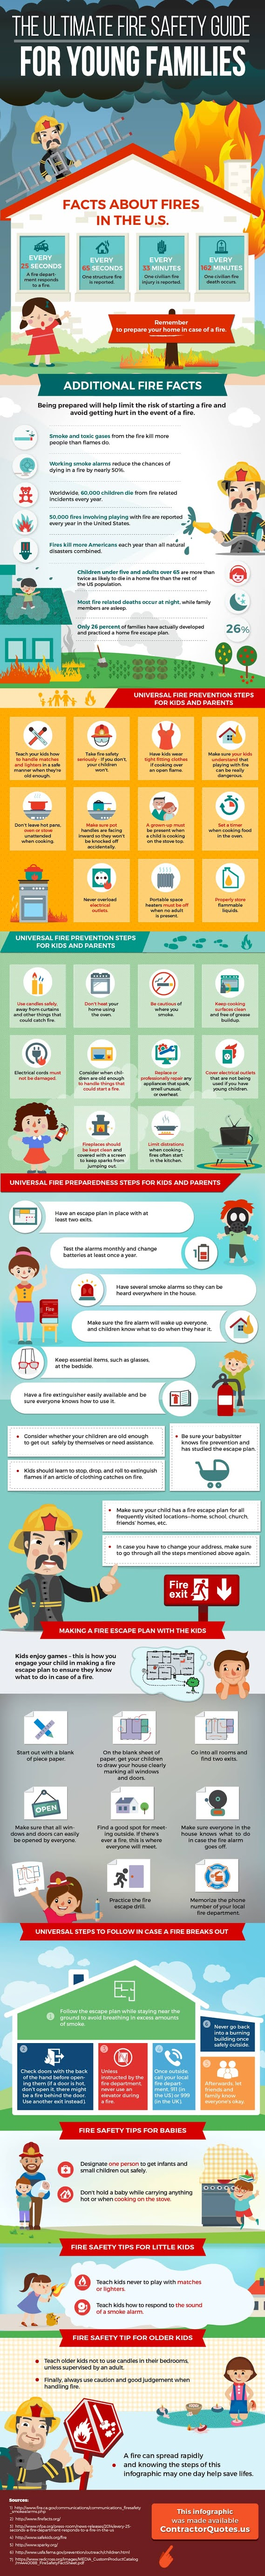 The Ultimate Fire Safety Guide For Young Families #infographic #Fire Safety #Kids #infographics #Babies #Safety Tips #Fire Exit